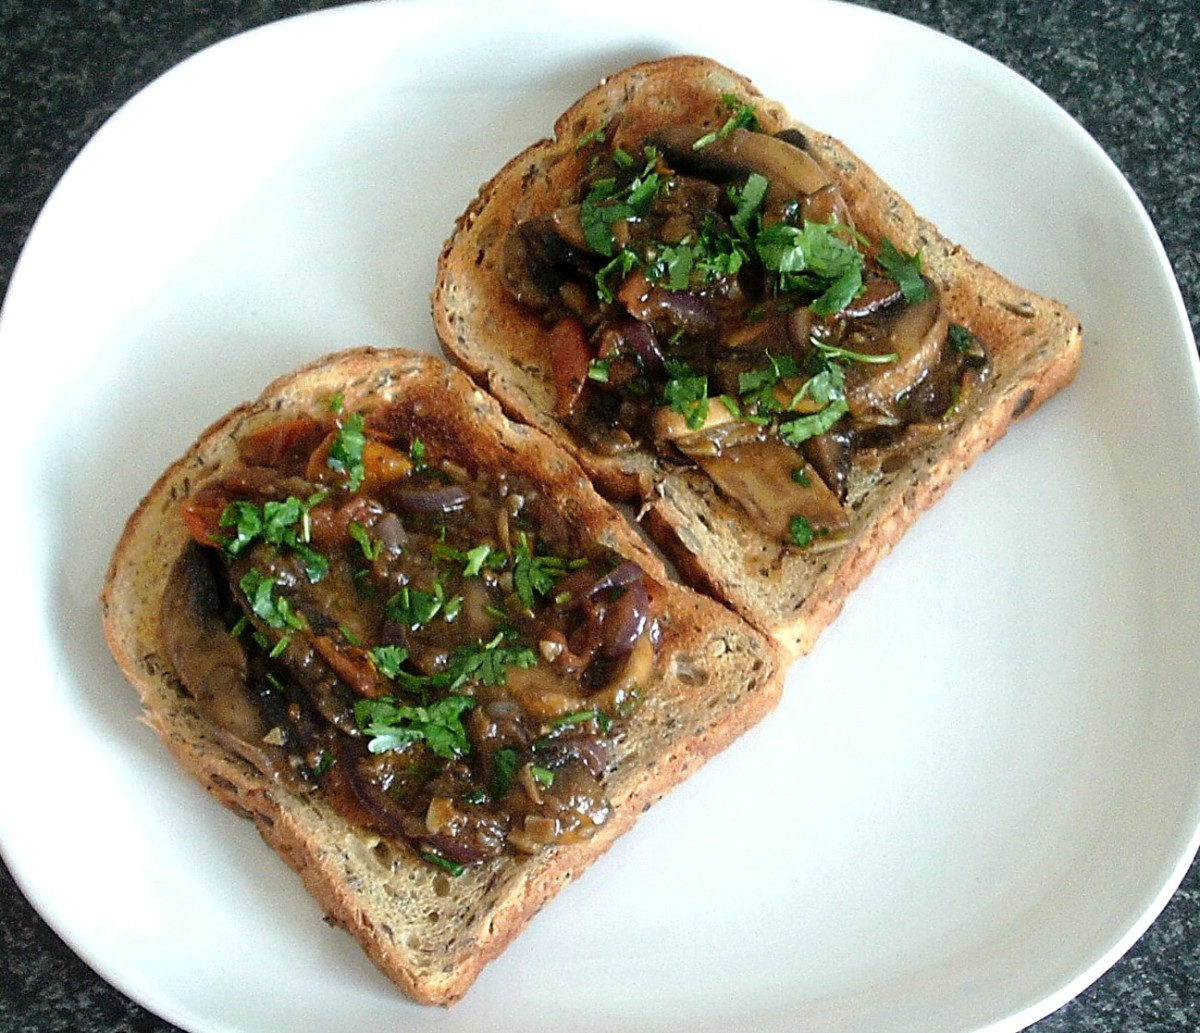 Curried garlic mushrooms and tomatoes are served on wholegrain toast